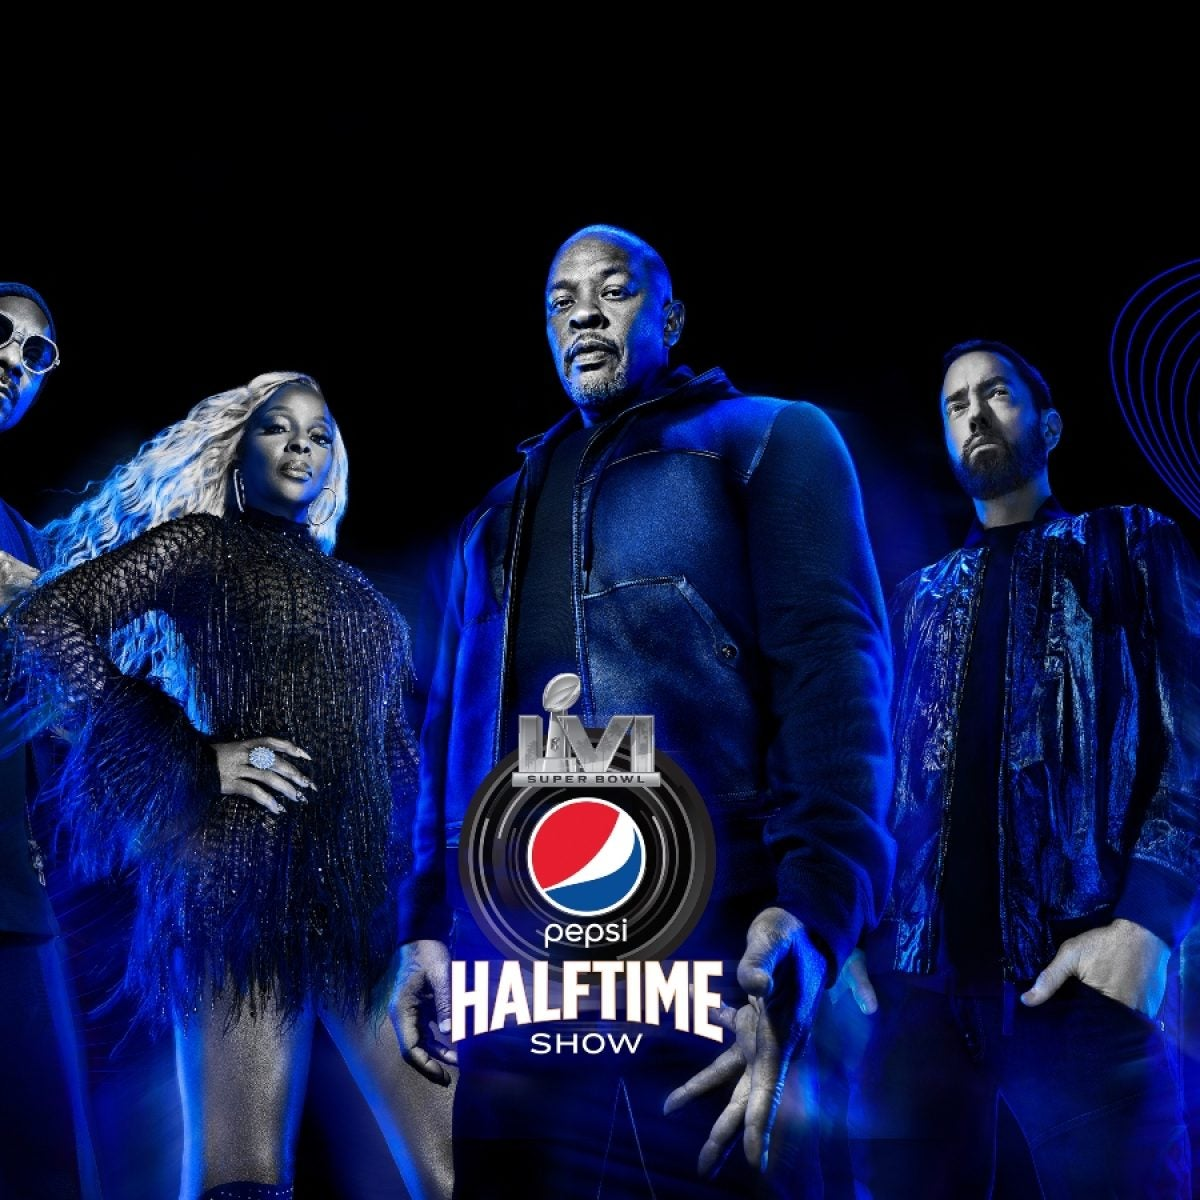 Mary J. Blige, Kendrick Lamar Among Epic Musical Lineup For The 2022 Super Bowl Halftime Show